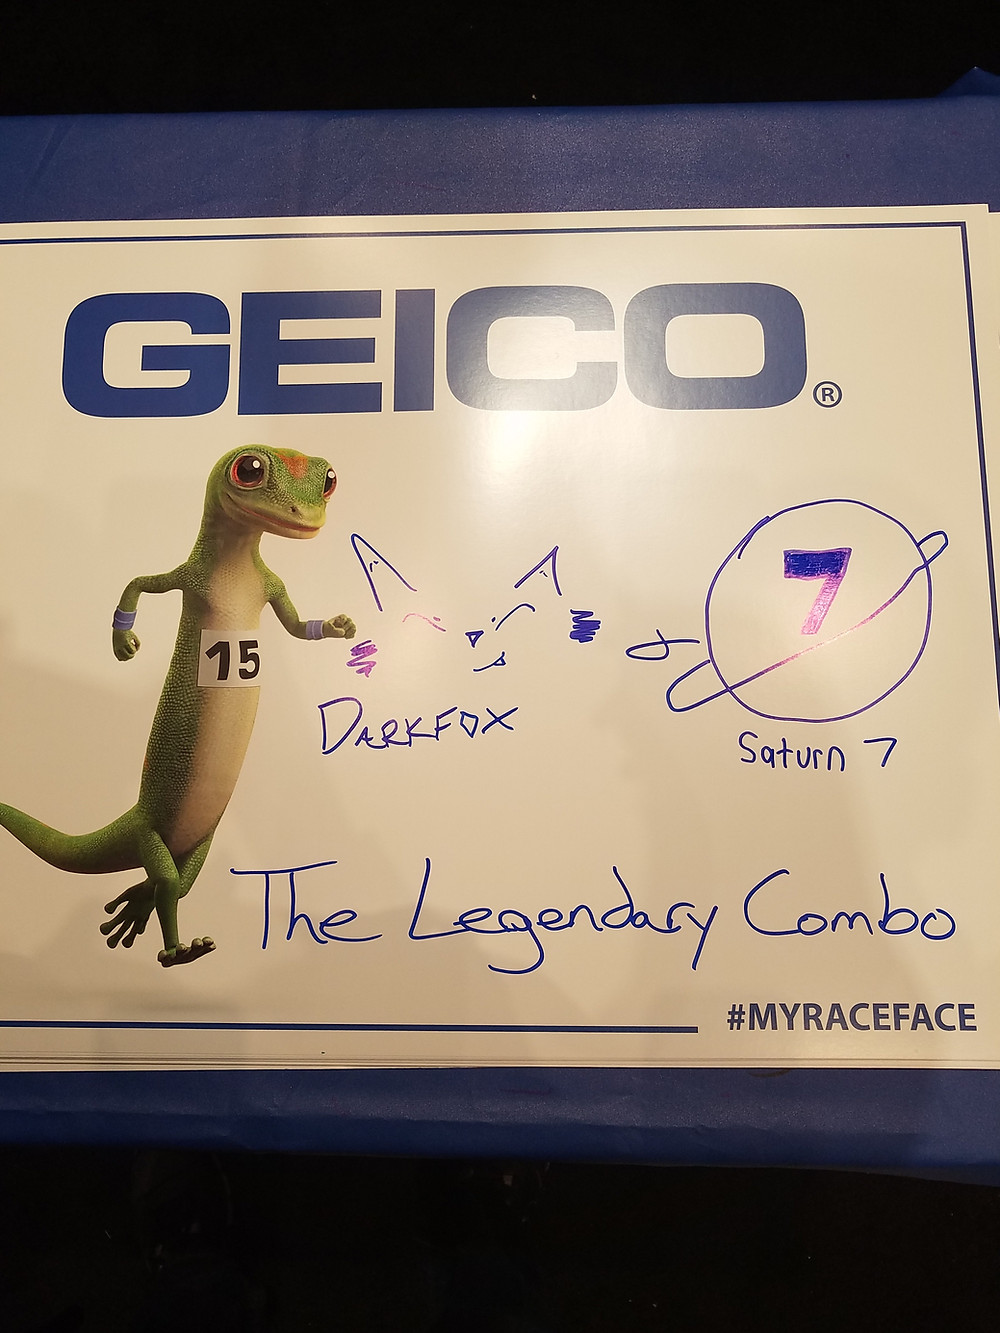 The Geico Gecko running in a marathon alongside images of Darkfox Photography's Logo and the logo for Saturn 7 Photography